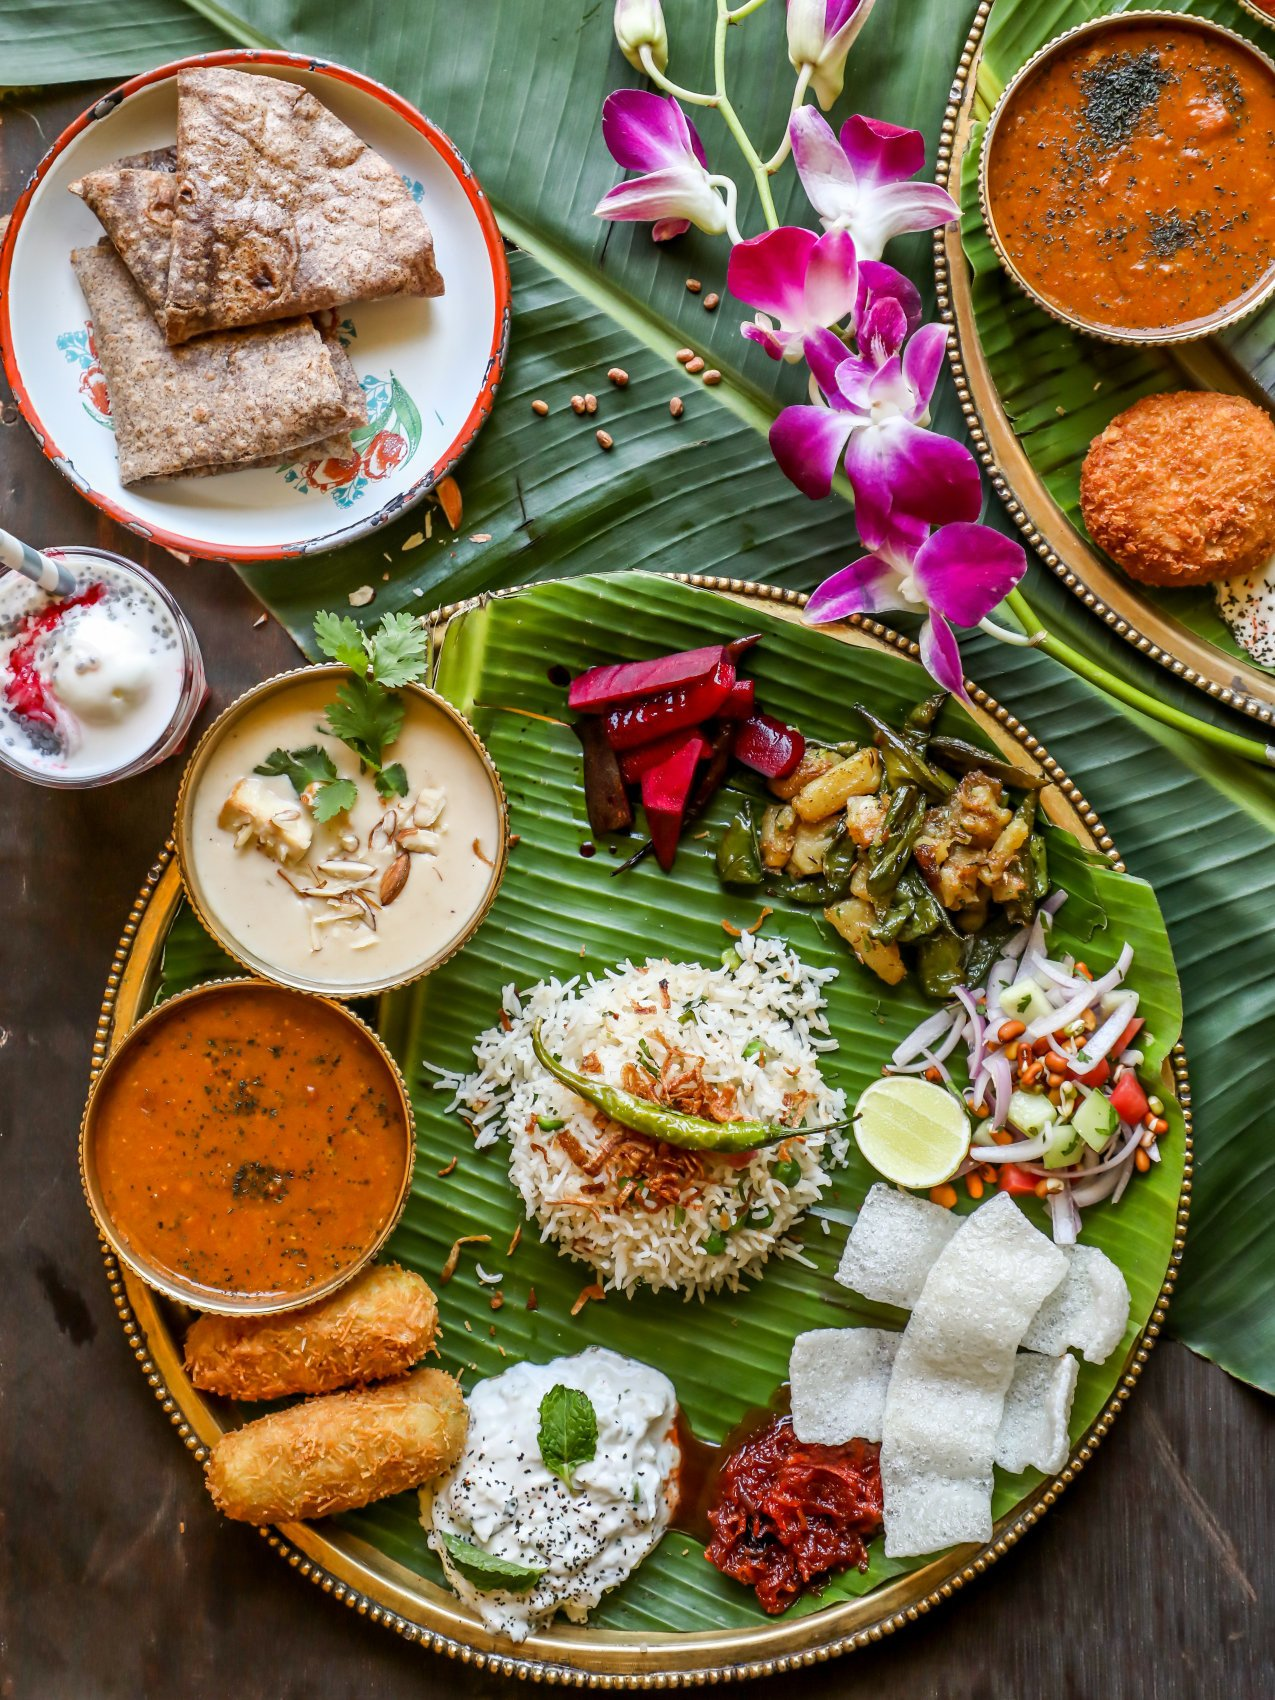 Mumbaikars! Celebrate Parsi New Year With Authentic Parsi Food In The City